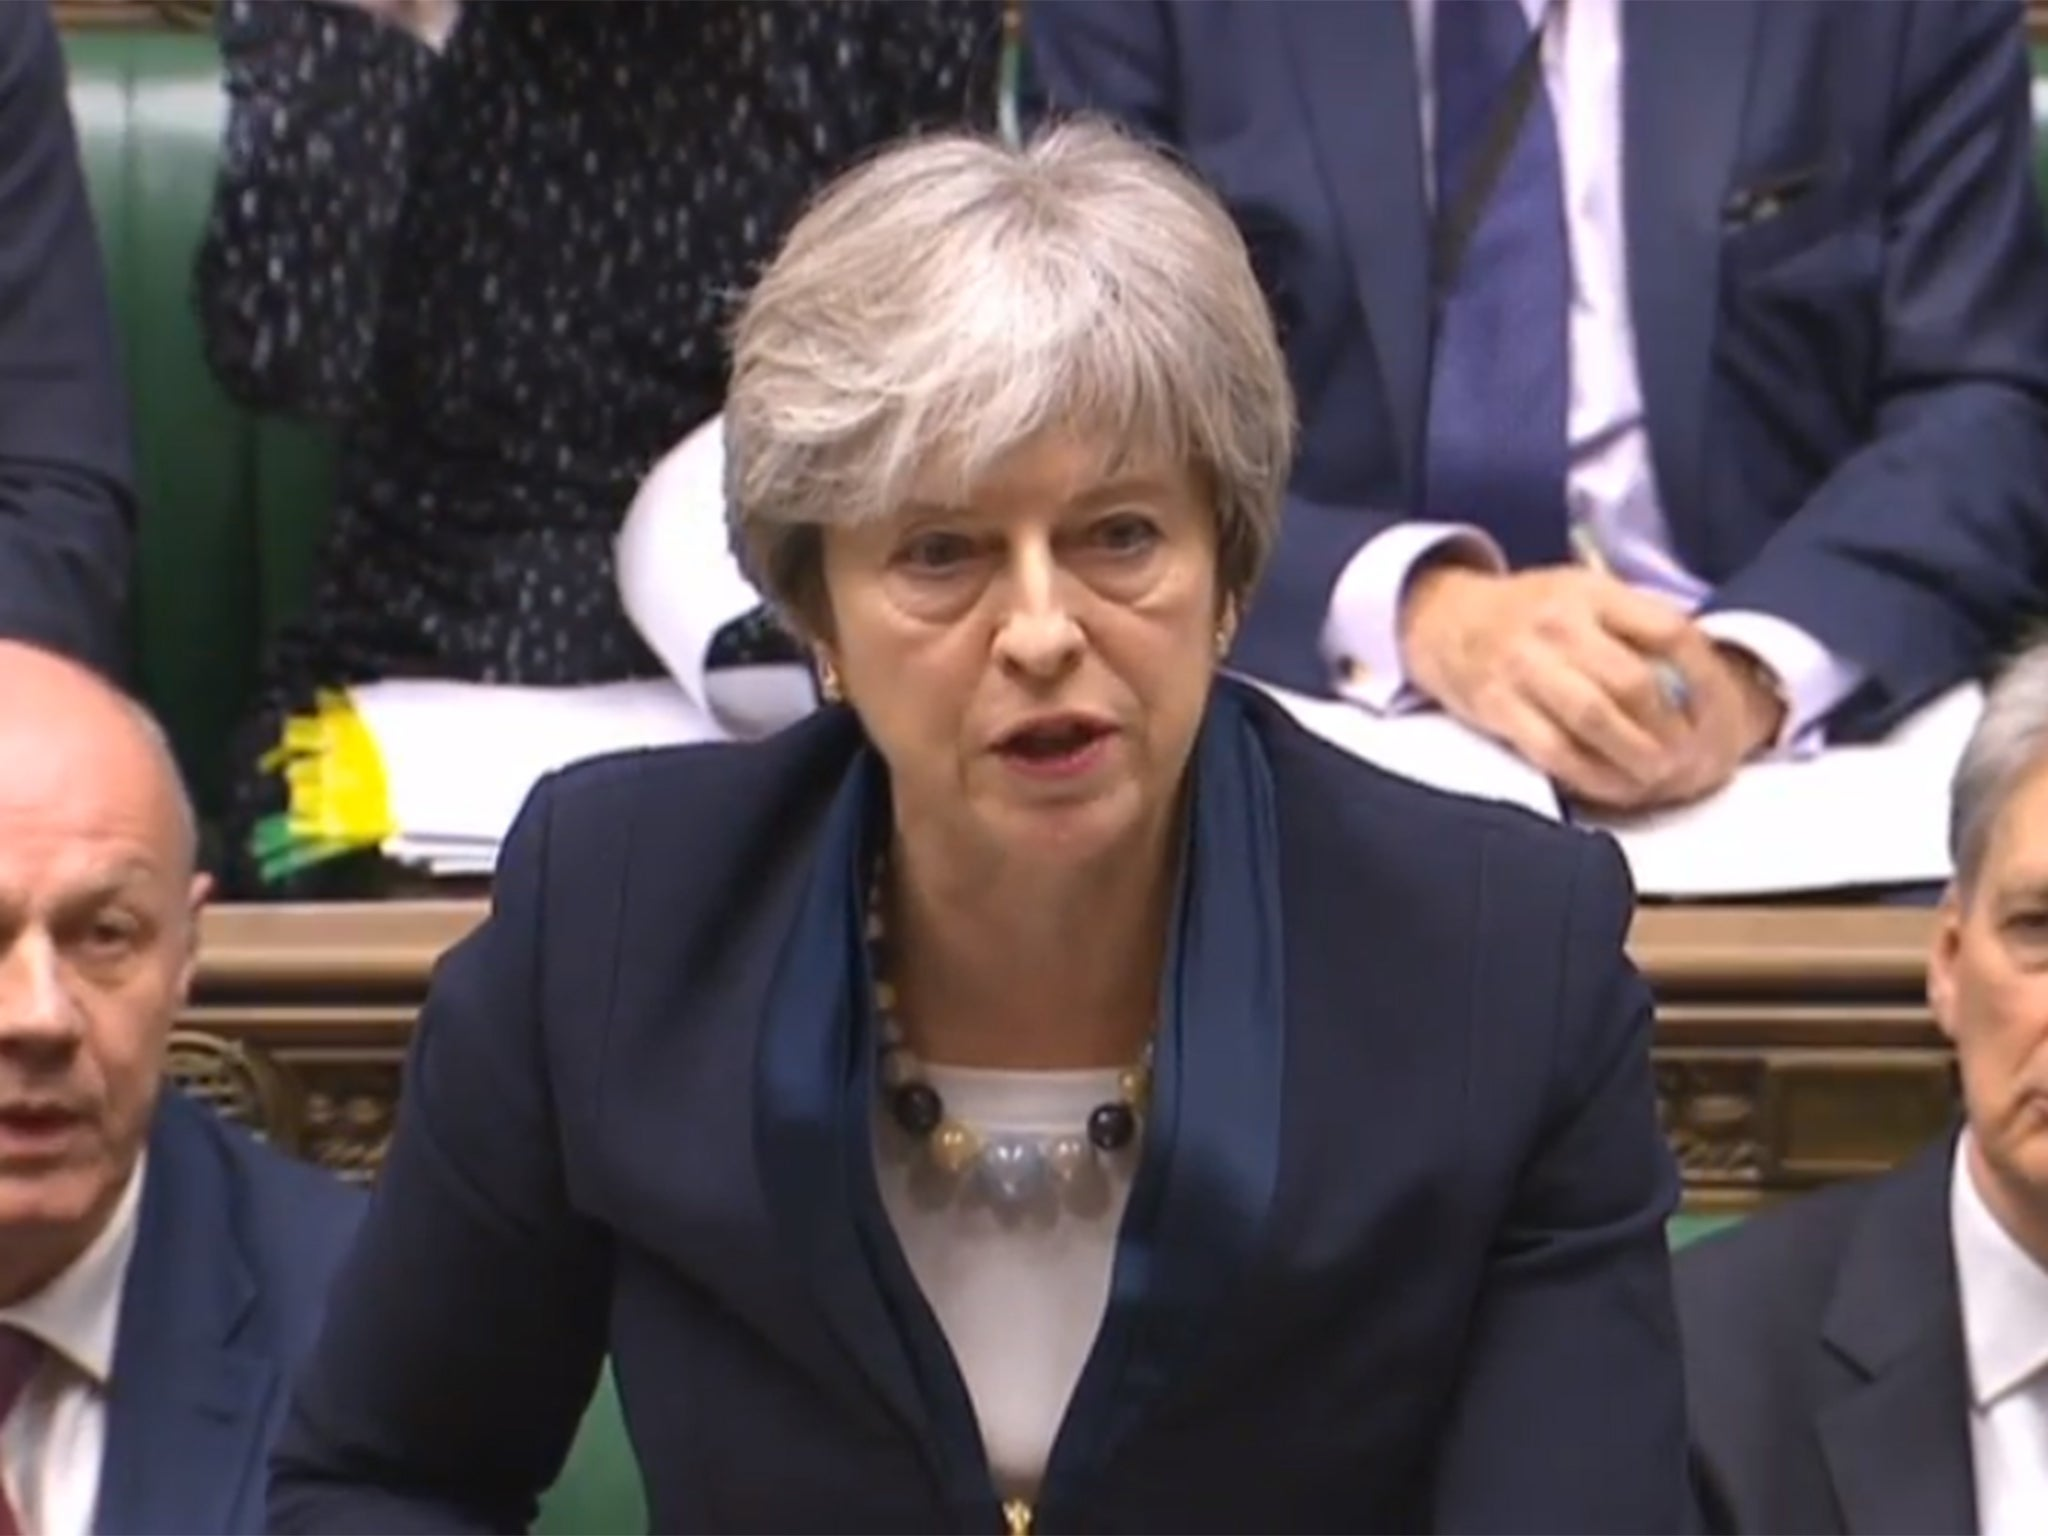 Follow all the latest updates from the Commons live